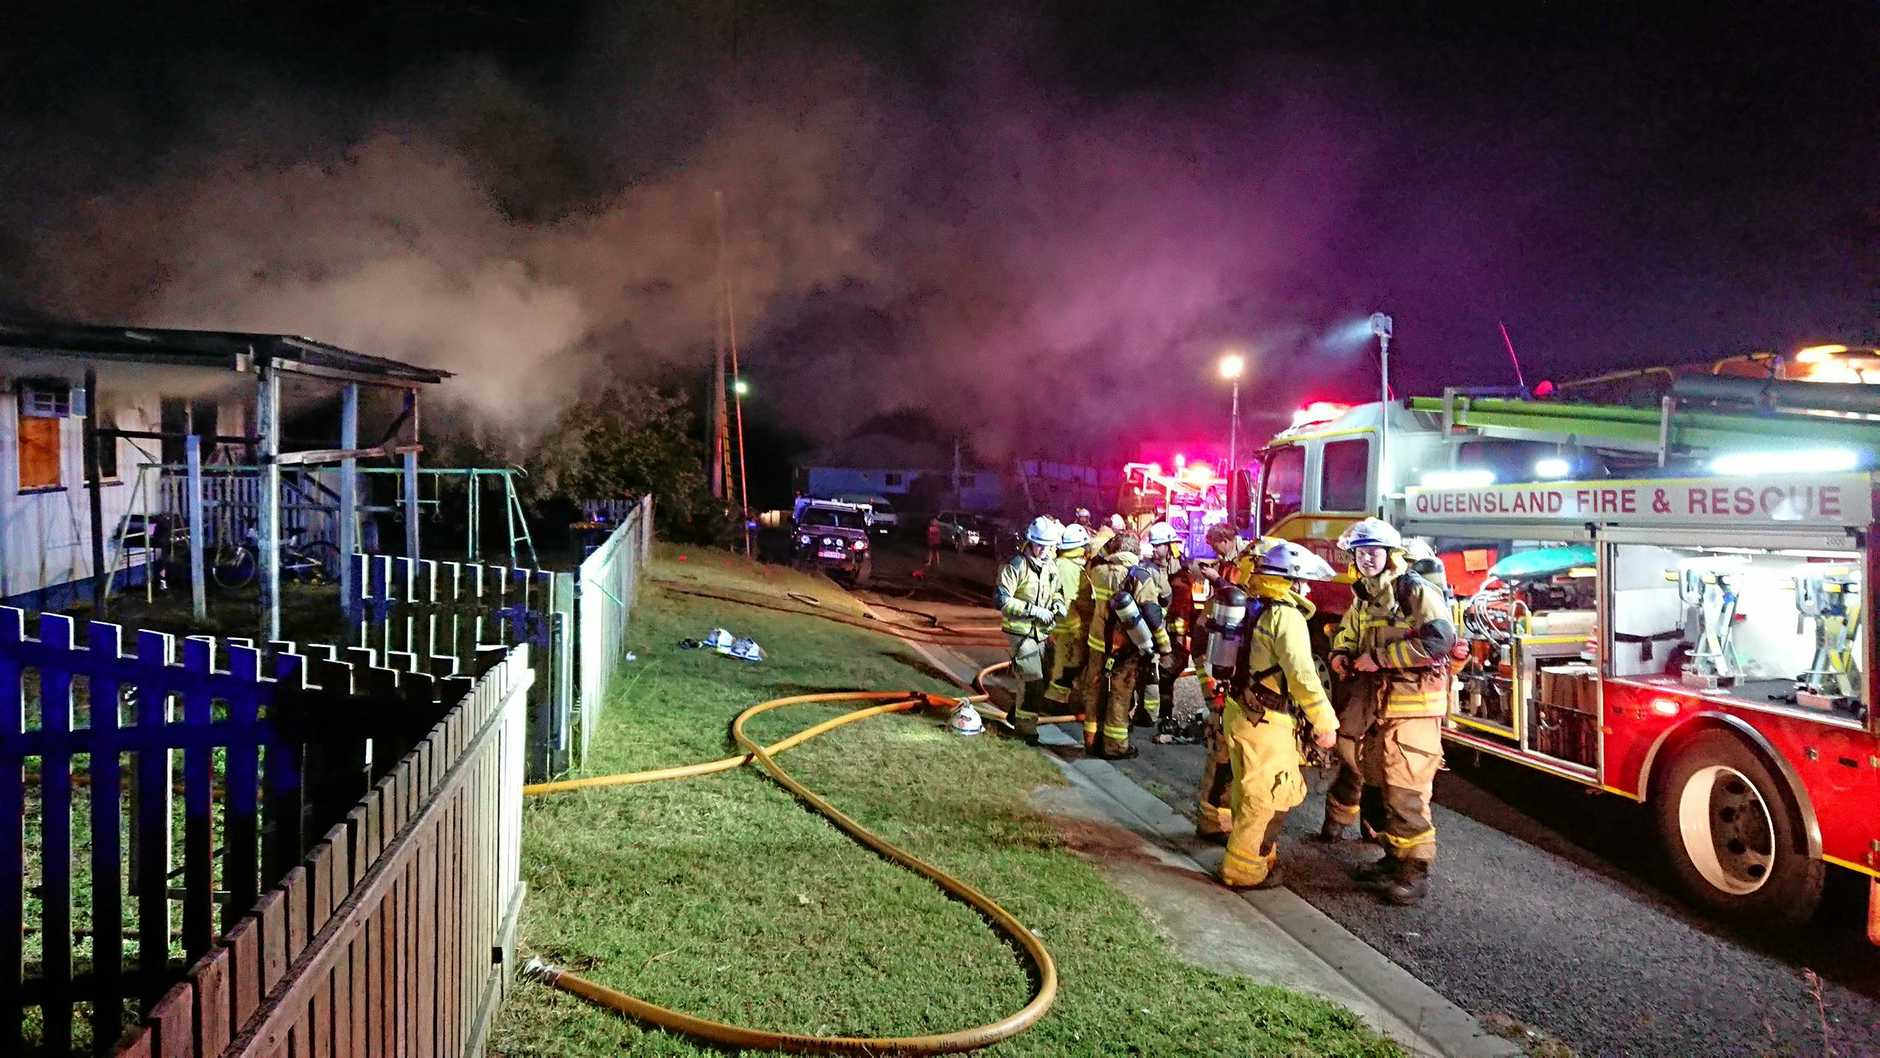 CHERBOURG FIRE: Fire fighters put out the blaze that engulfed the Oak Ave house.